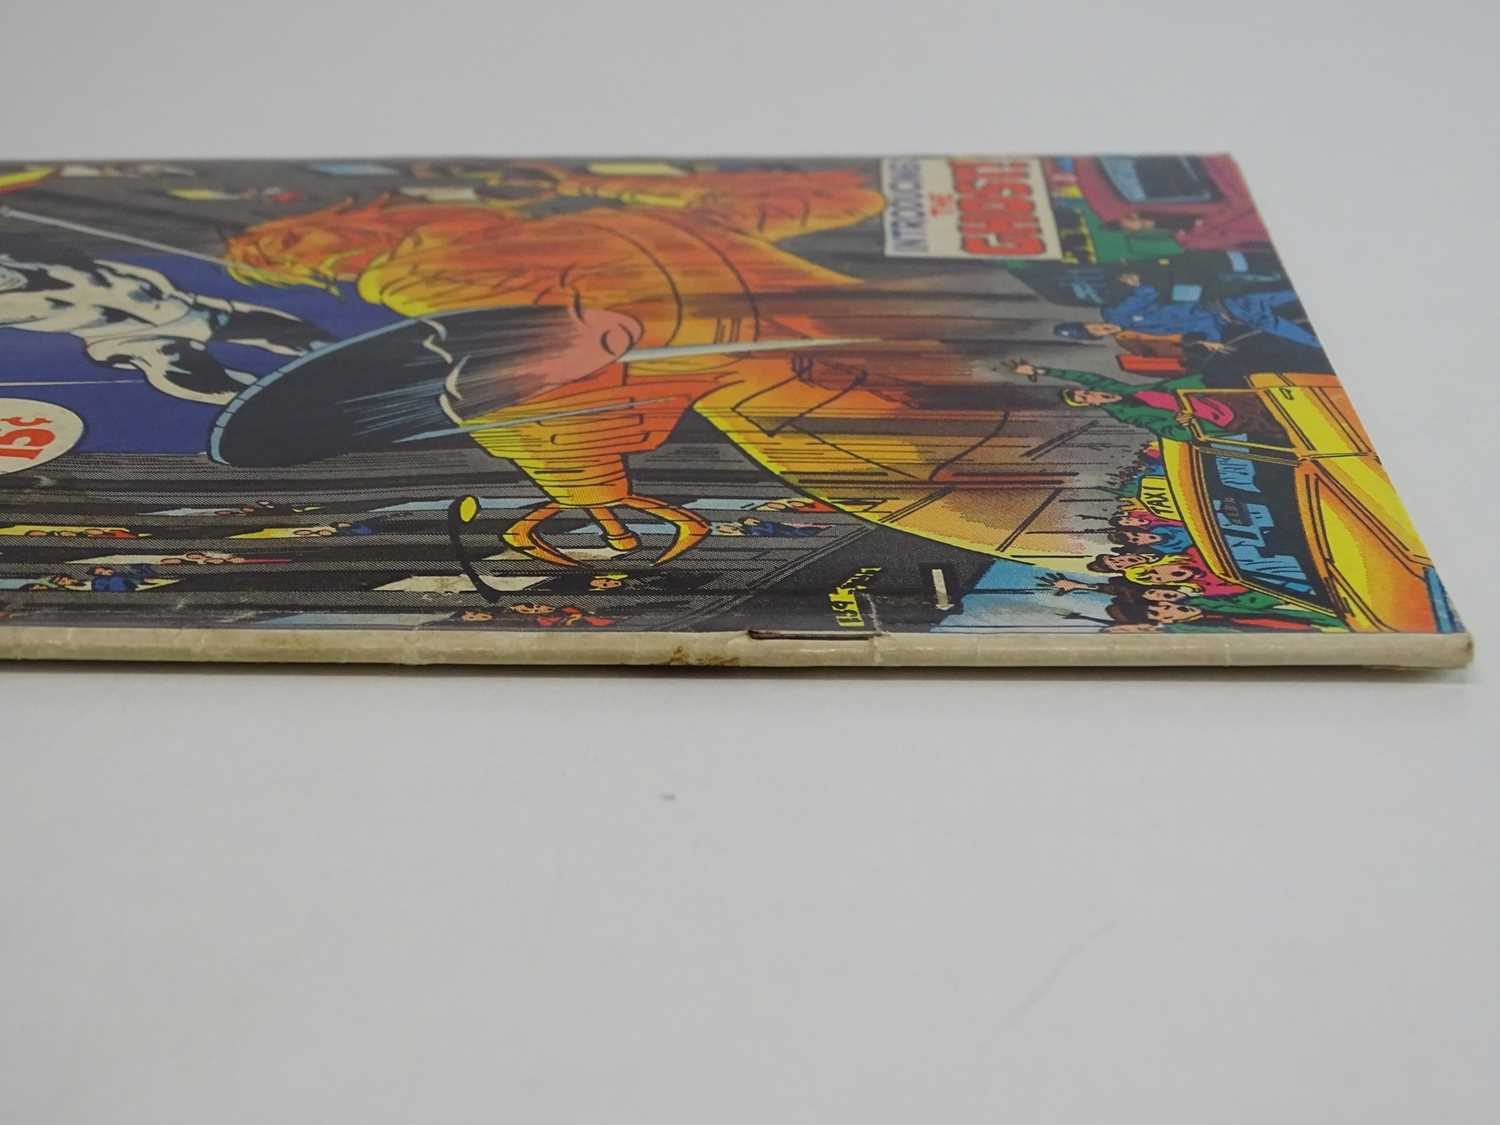 SILVER SURFER #8 - (1969 - MARVEL - UK Cover Price) First appearance of the Flying Dutchman + - Image 9 of 9